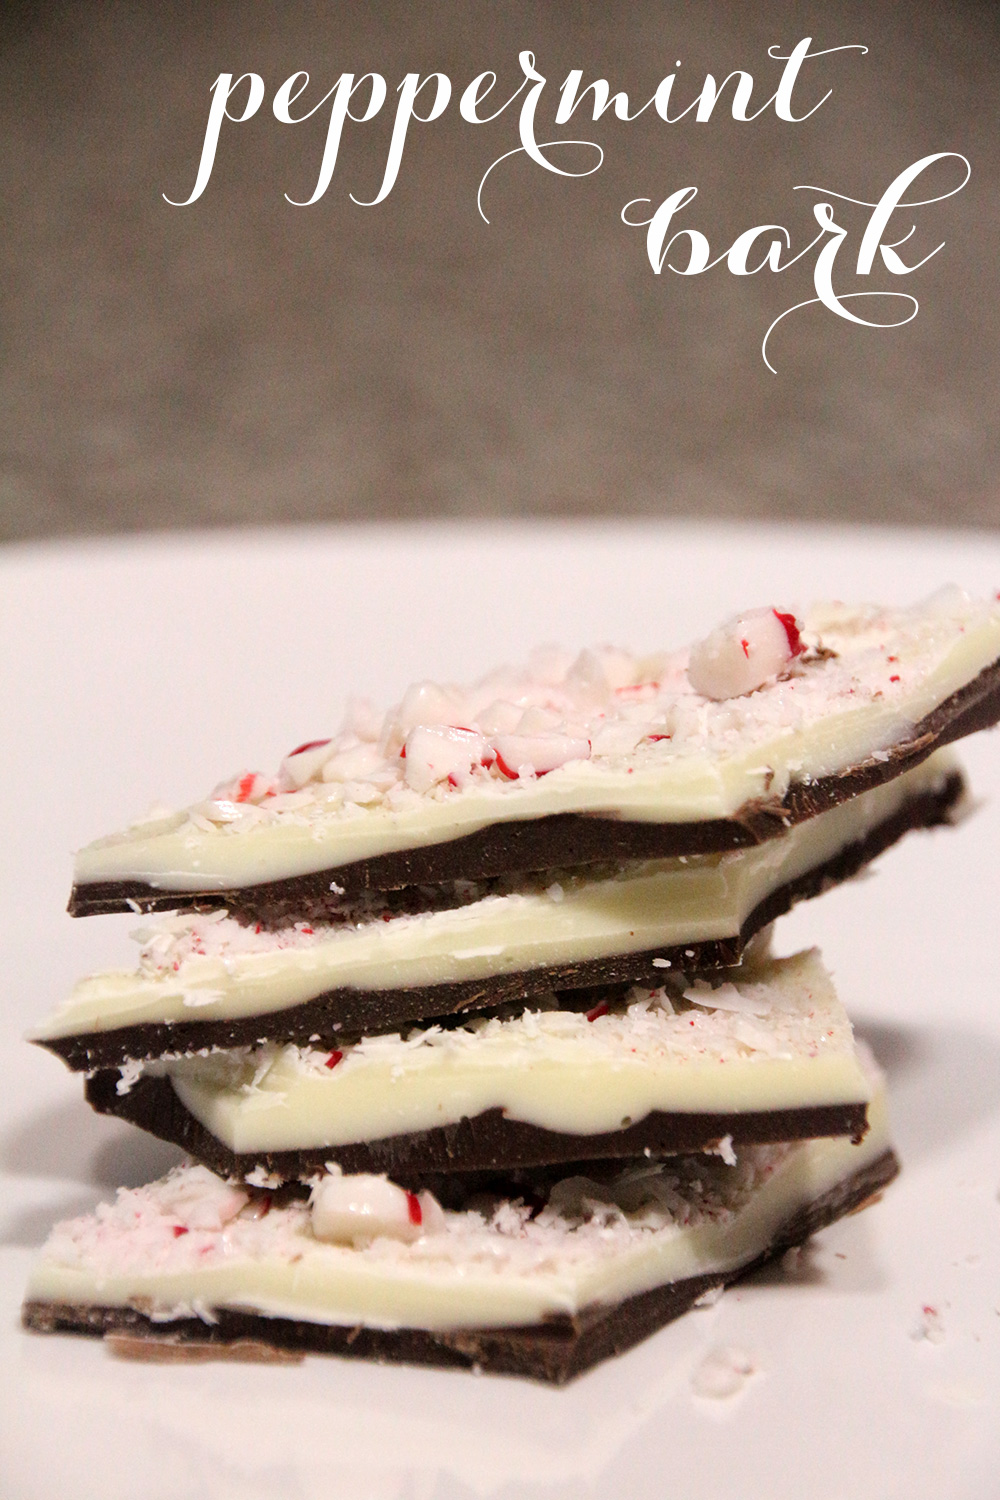 Peppermint-Bark-030-text